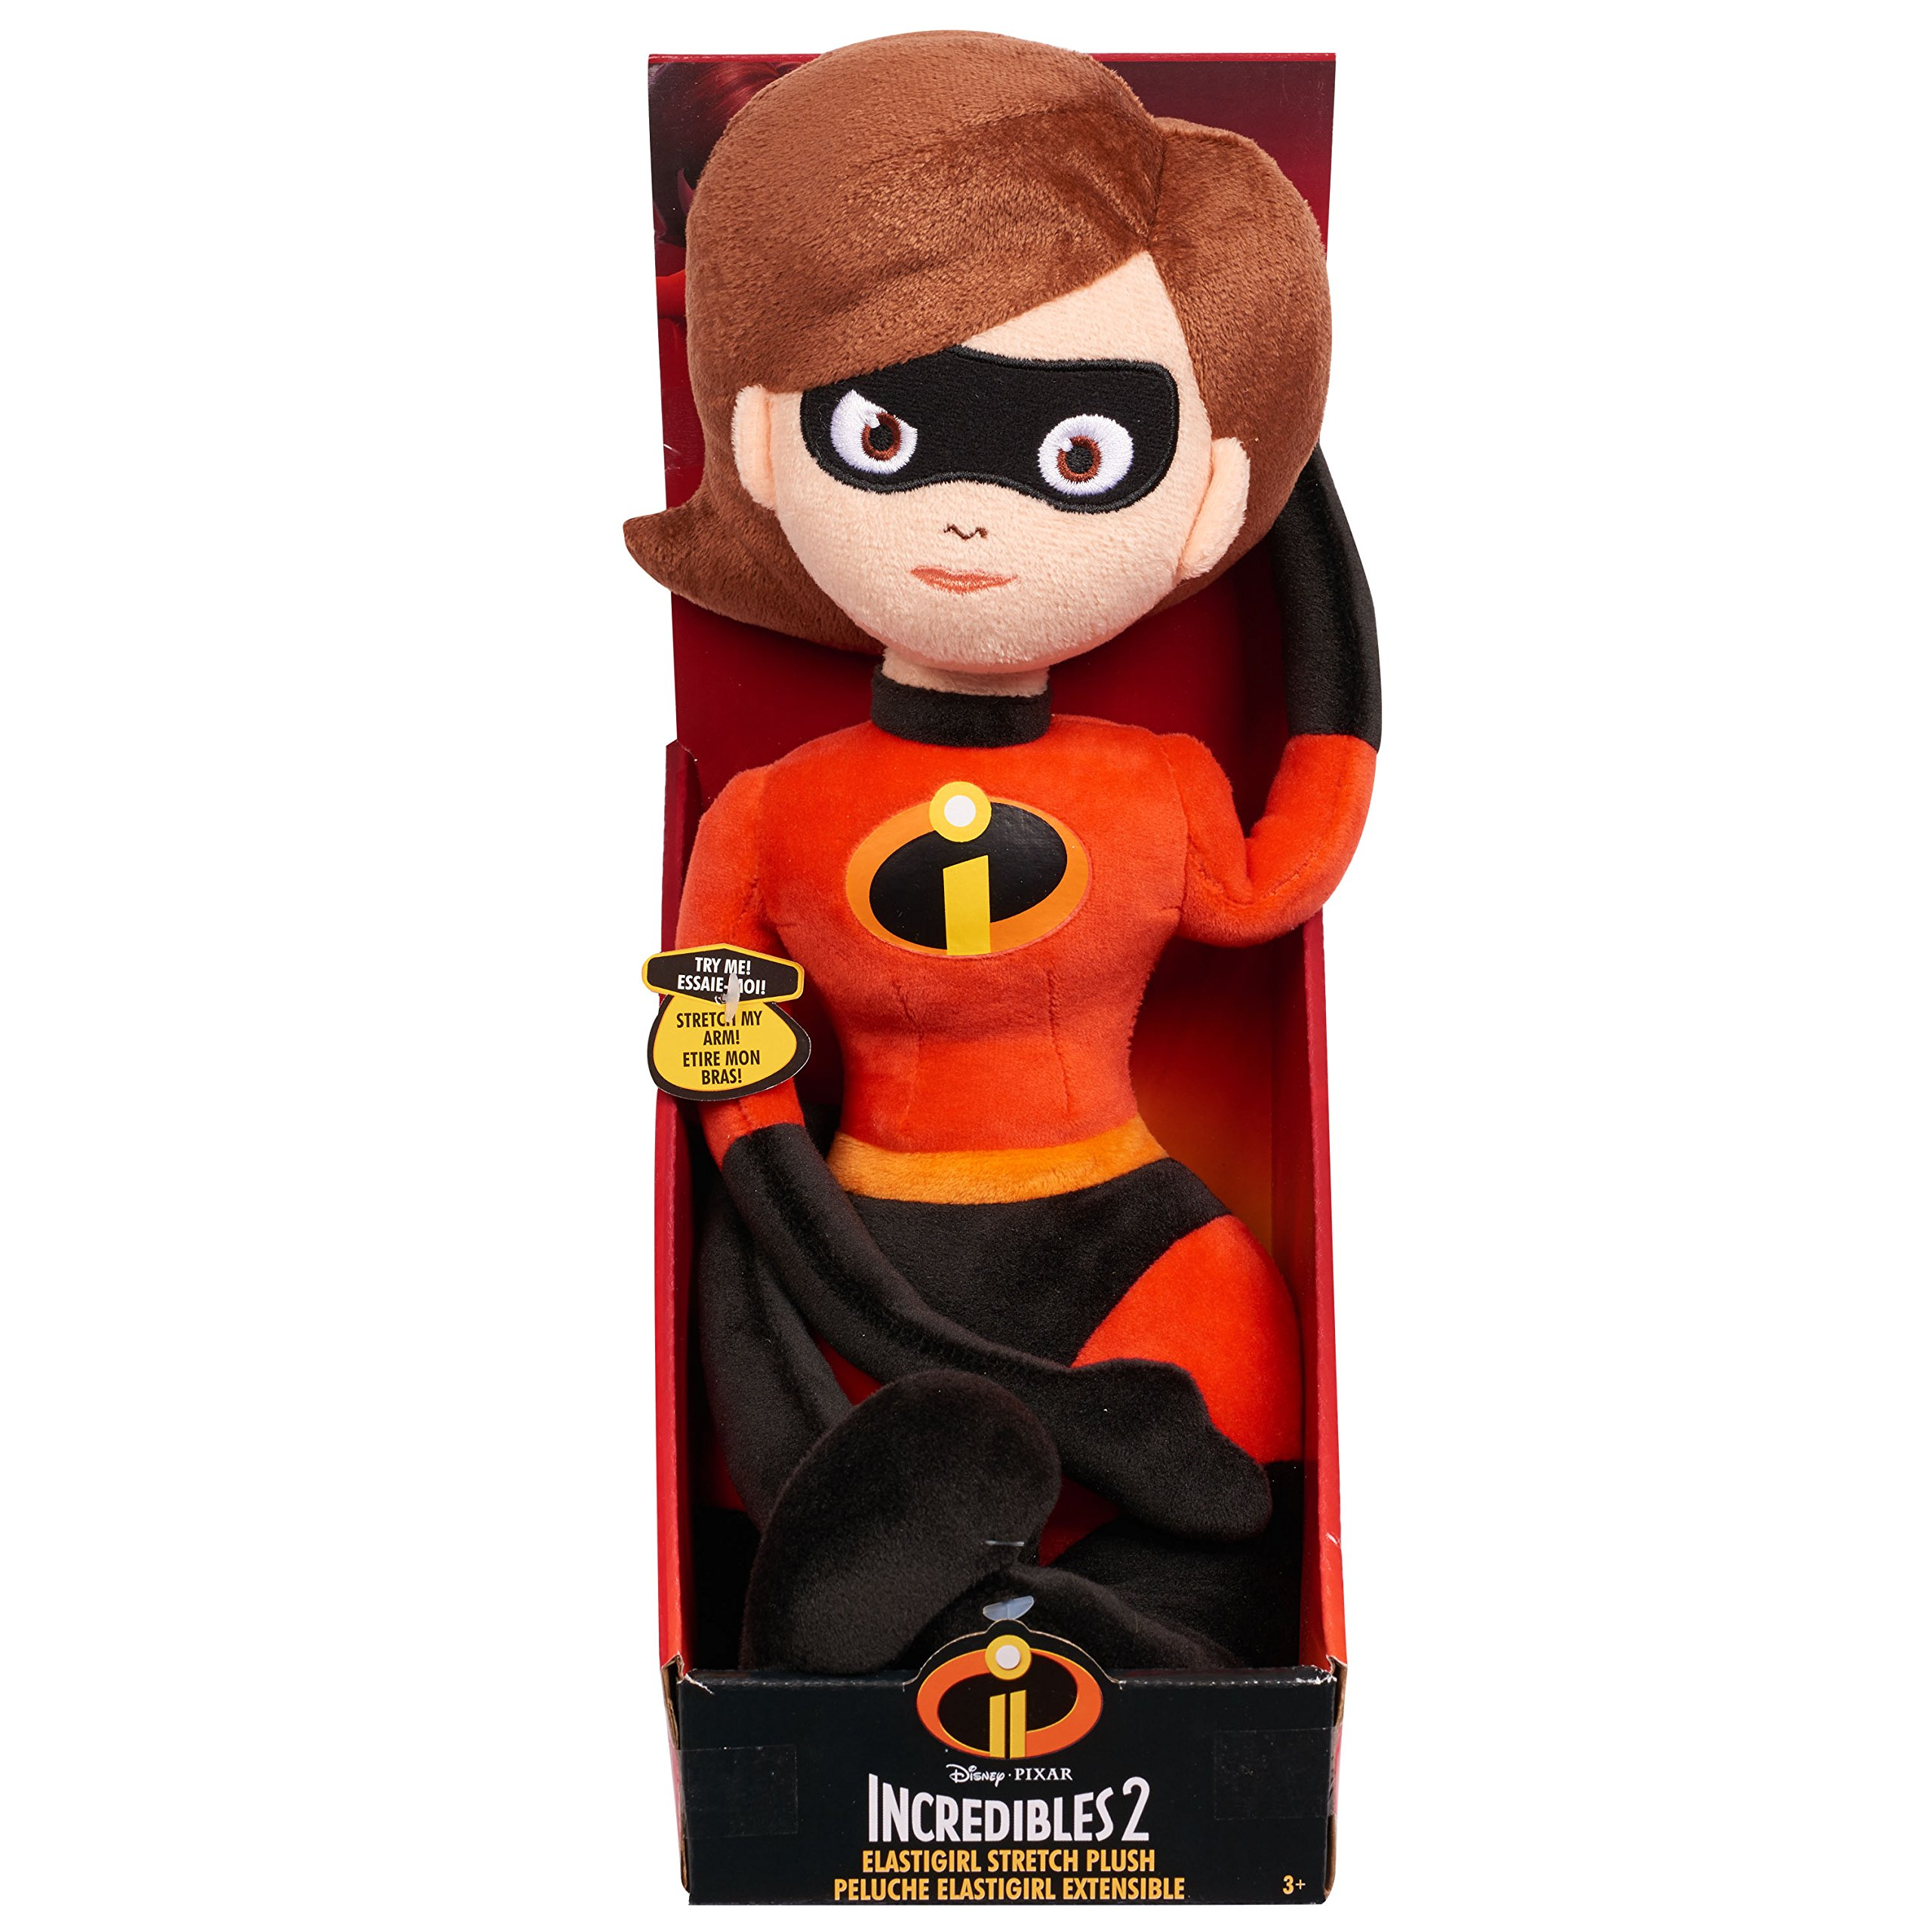 The Incredibles Plush